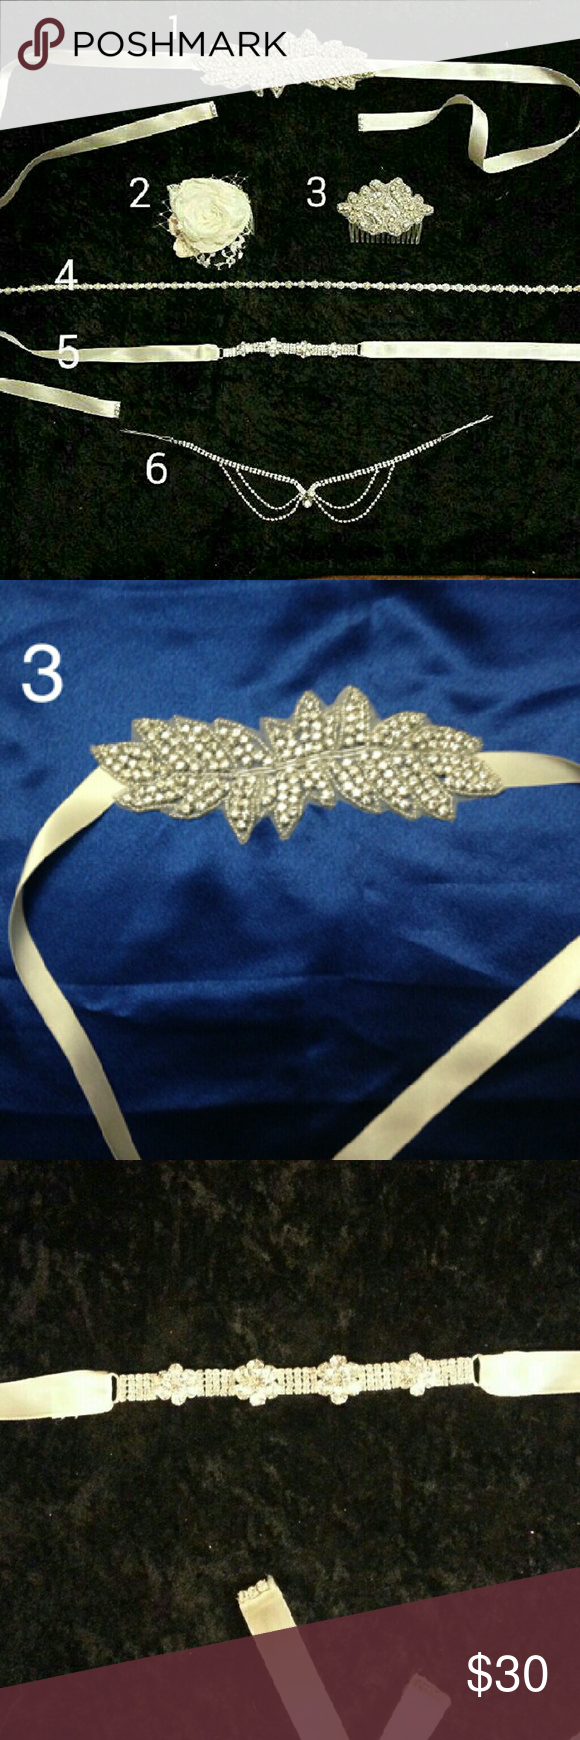 Additional  sash / headband pics @parkerkinsey either Can be worn as either sash or headband :) firstcomeslovexoxo com Jewelry